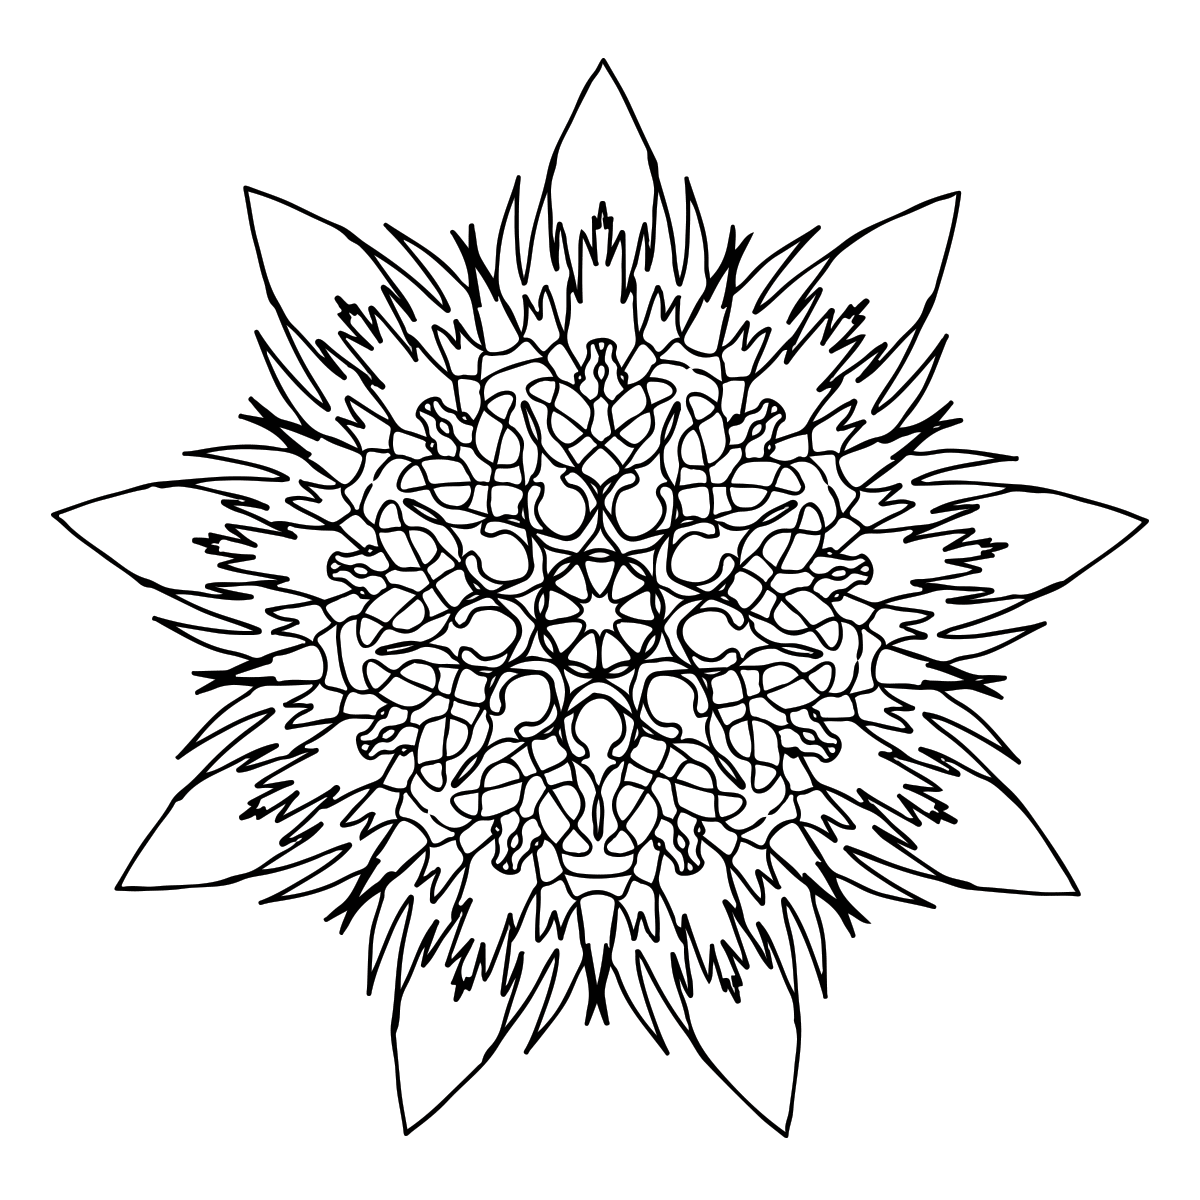 coloring pages of flames - flame mandala coloring page